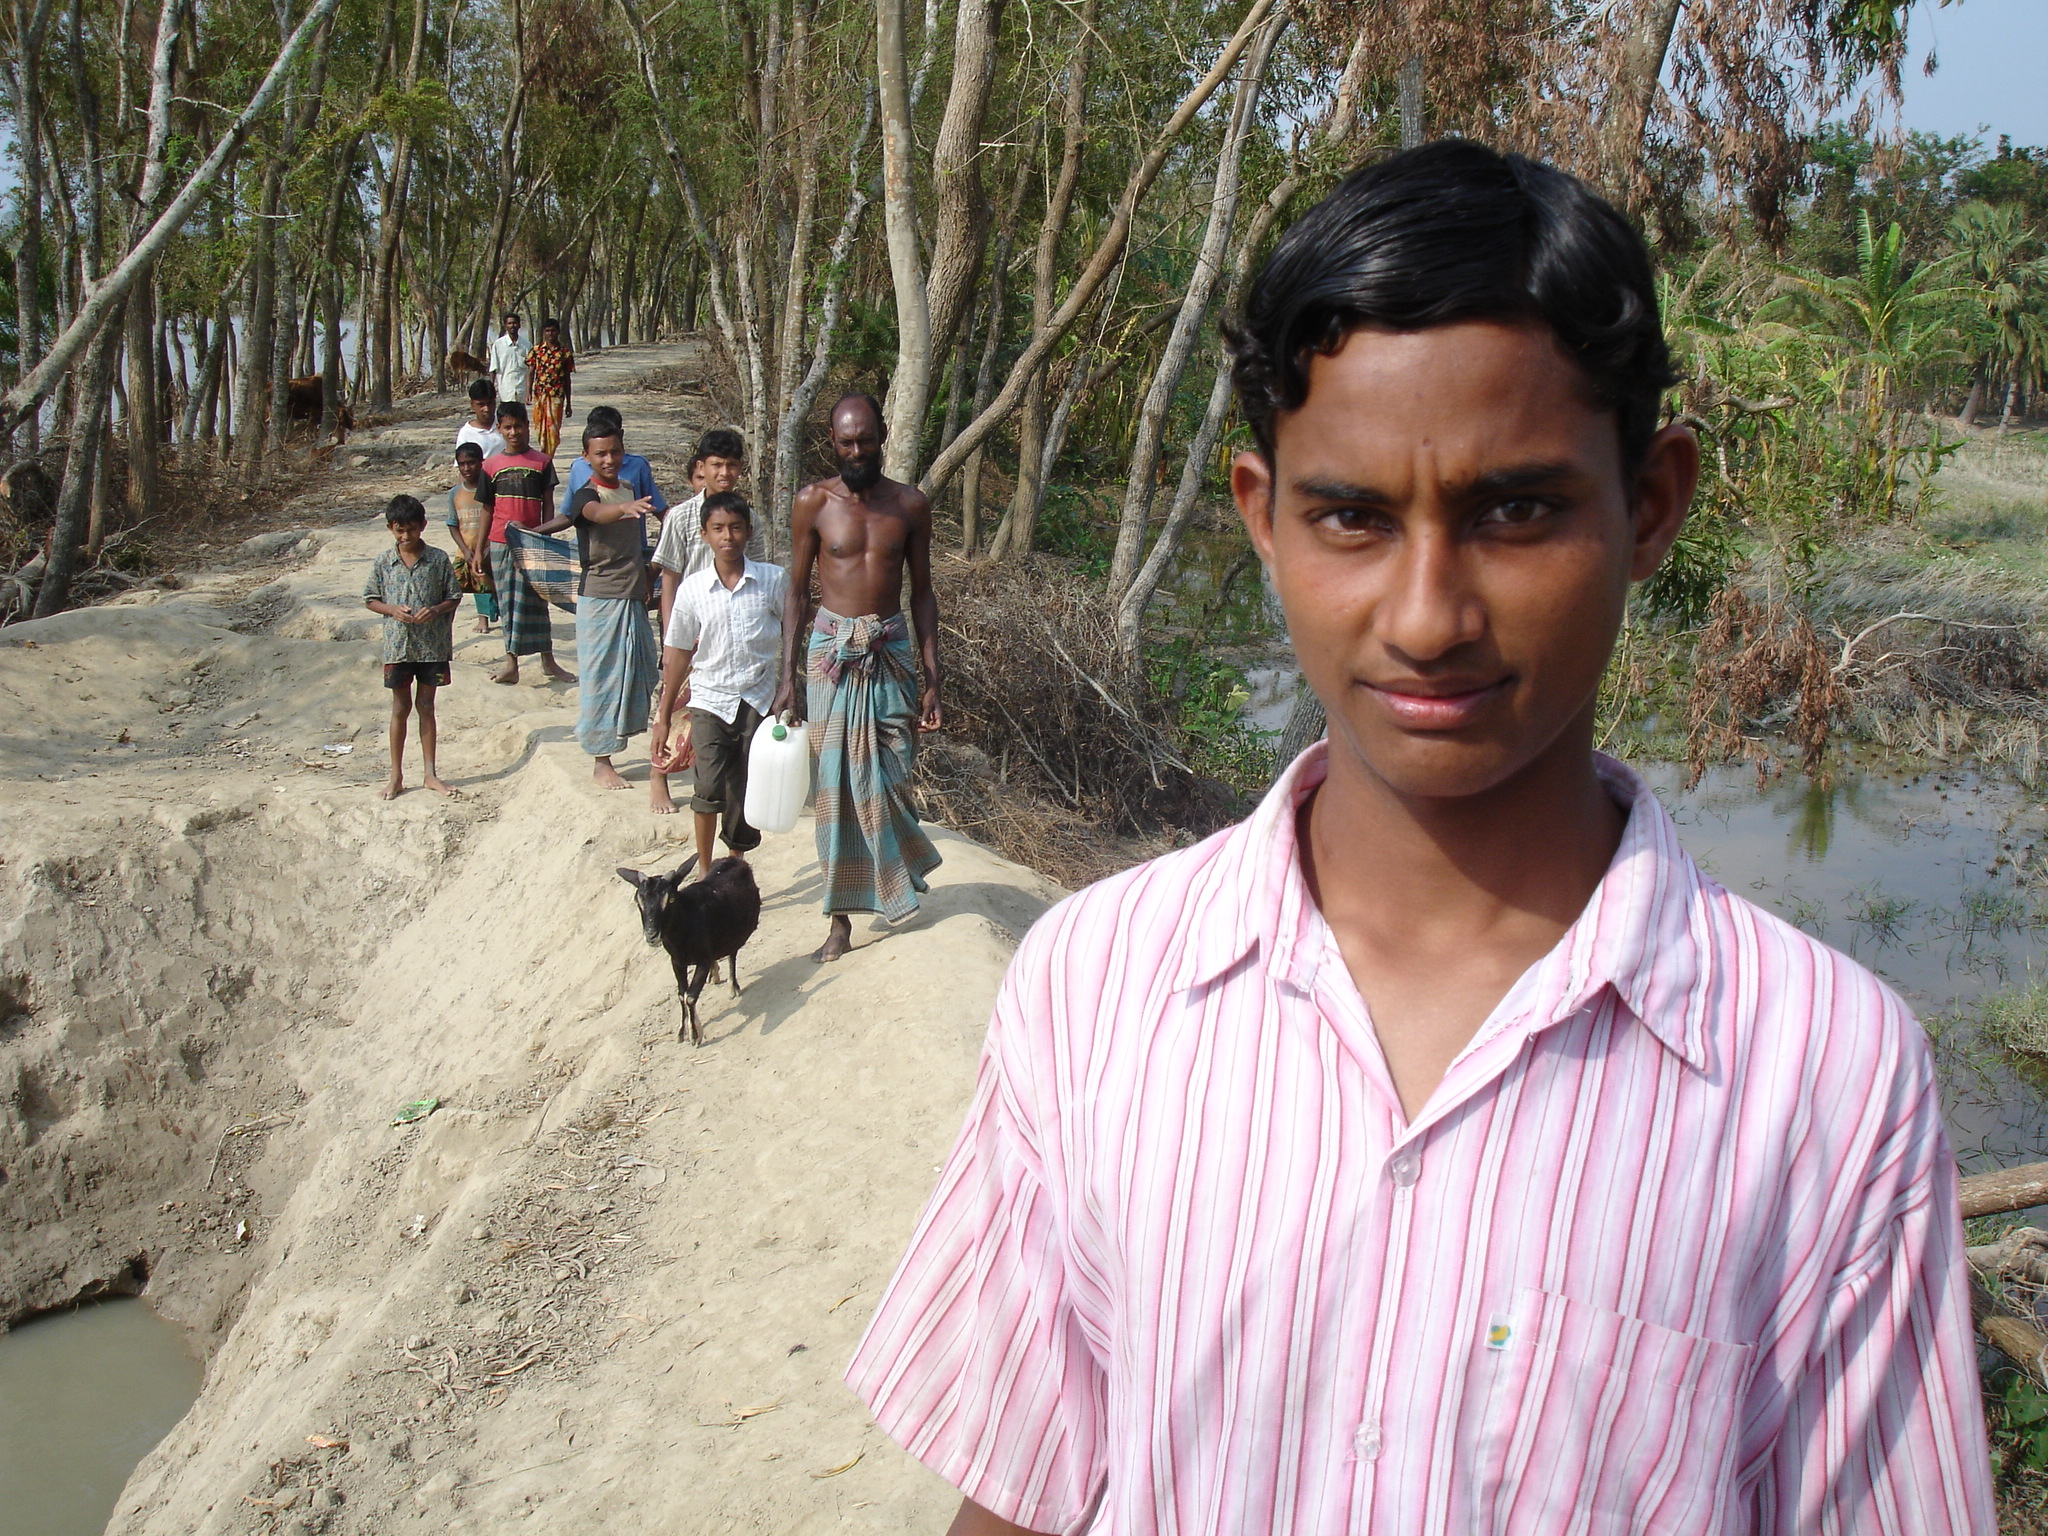 A young boy walks along a polder in Bangladesh's cyclone-affected Barguna District. Approximately 90 percent of area residents live within the confines of such polders, making them a critical first line of defense against tidal surges and cyclones.